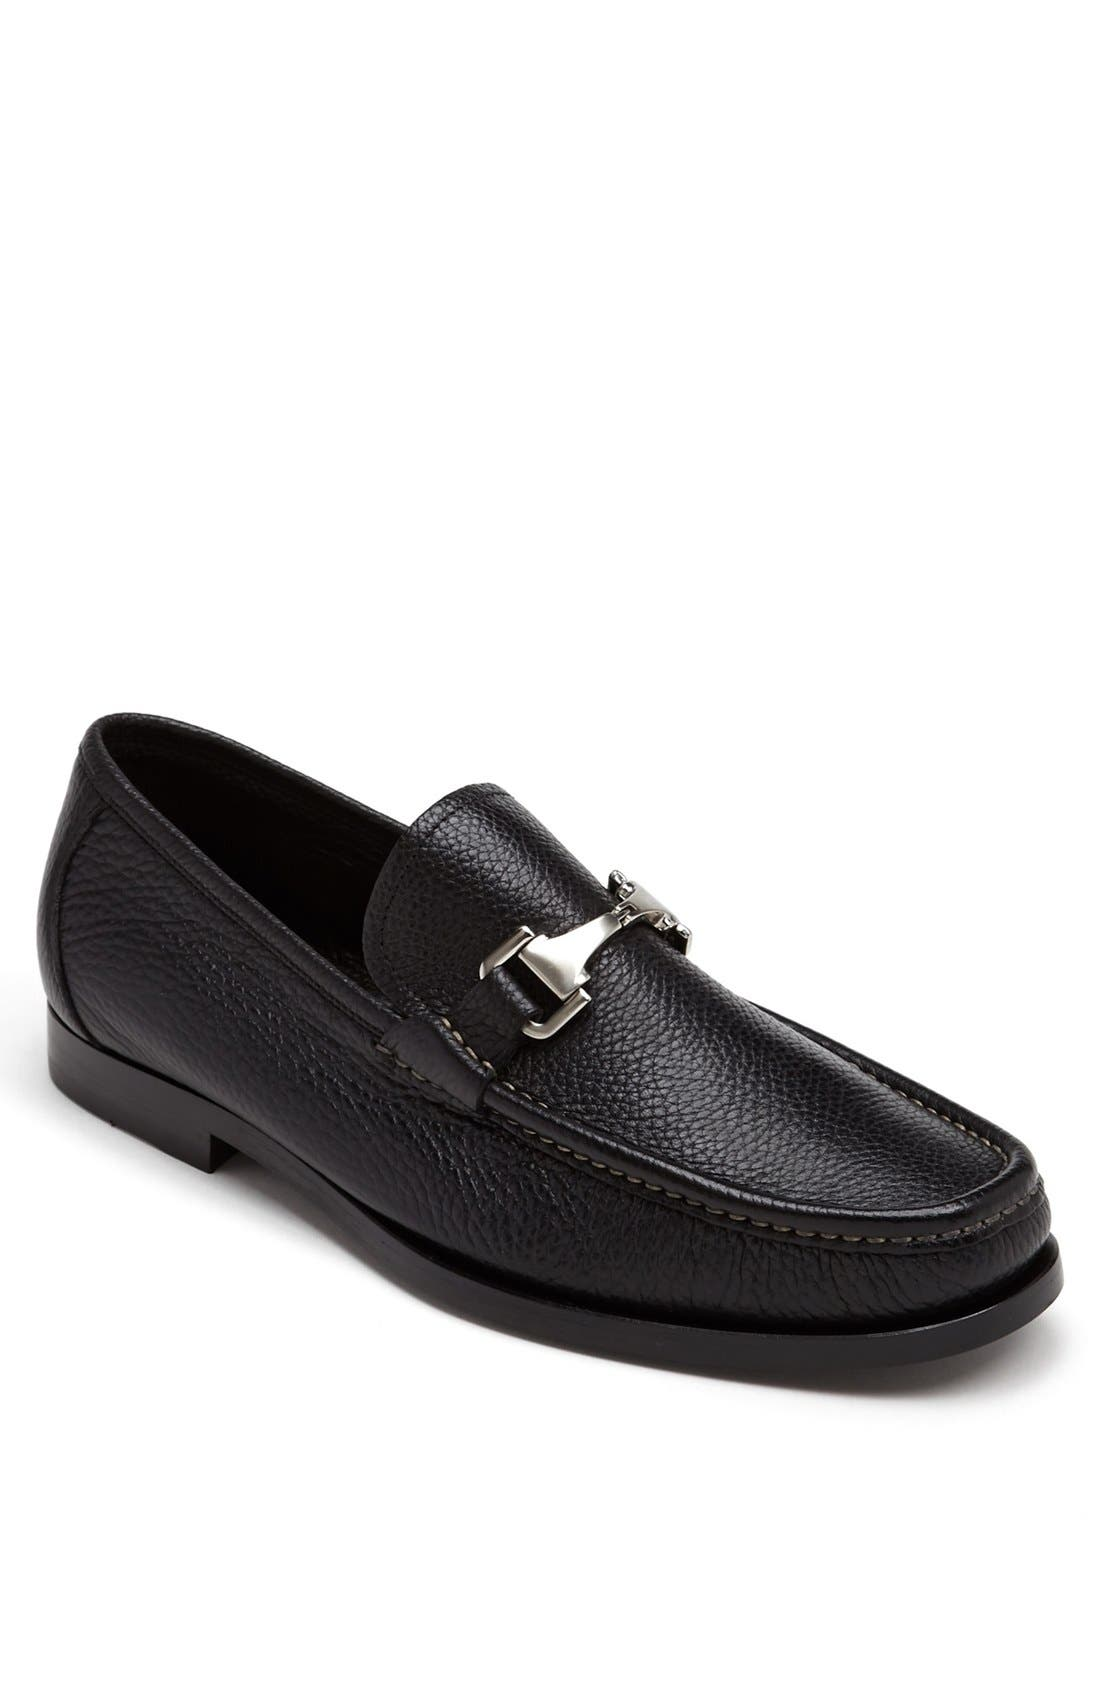 Main Image - Allen Edmonds 'Firenze' Bit Loafer (Men)